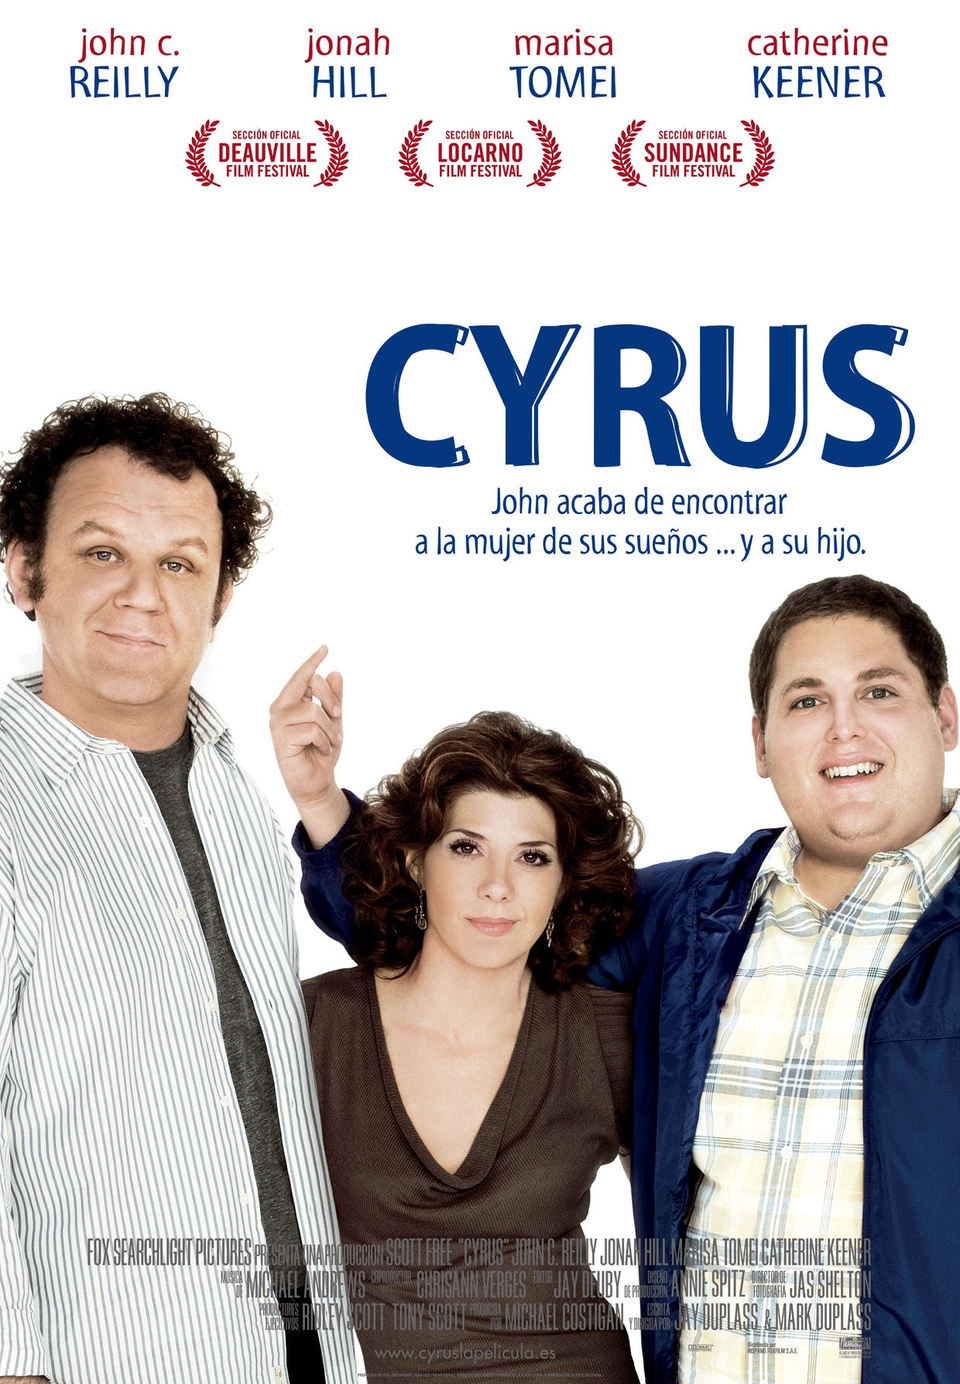 Europa poster for Cyrus